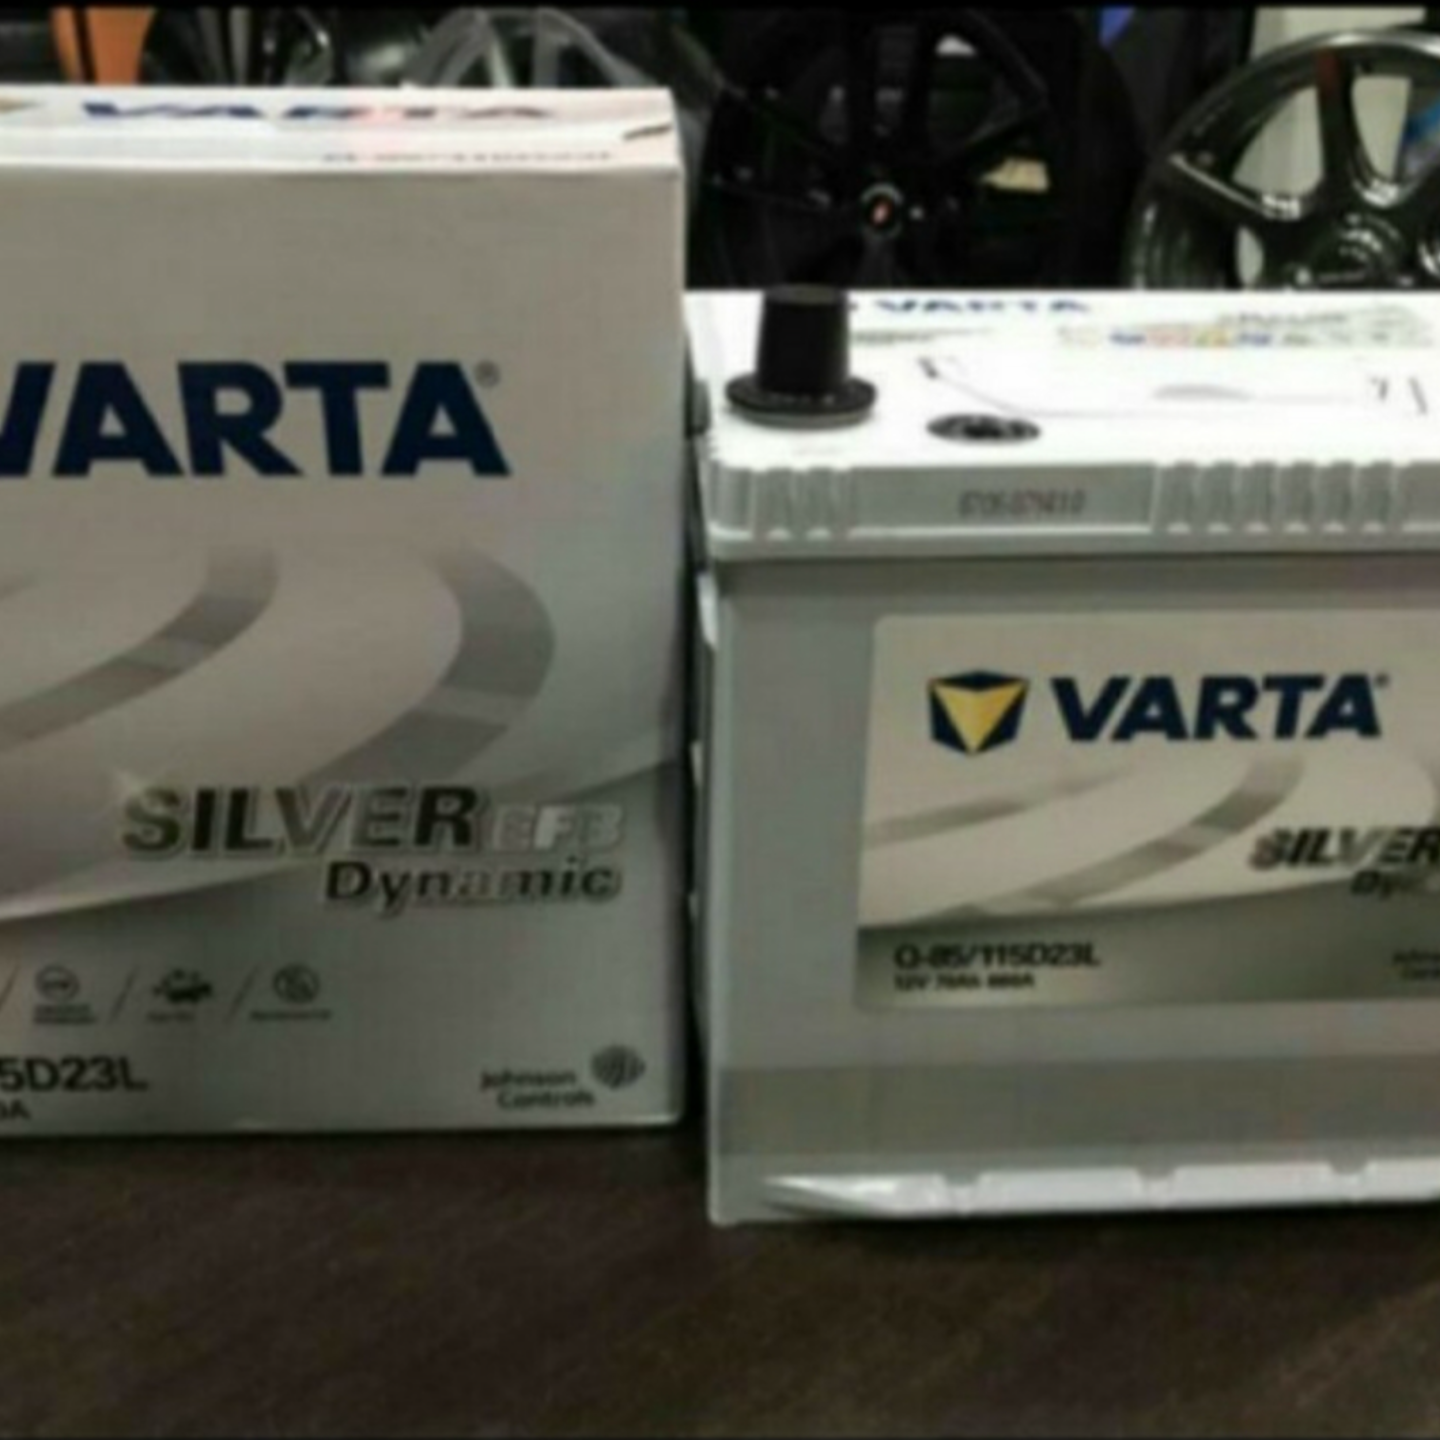 VARTA Q85 EFB Silver Dynamic car batteries.